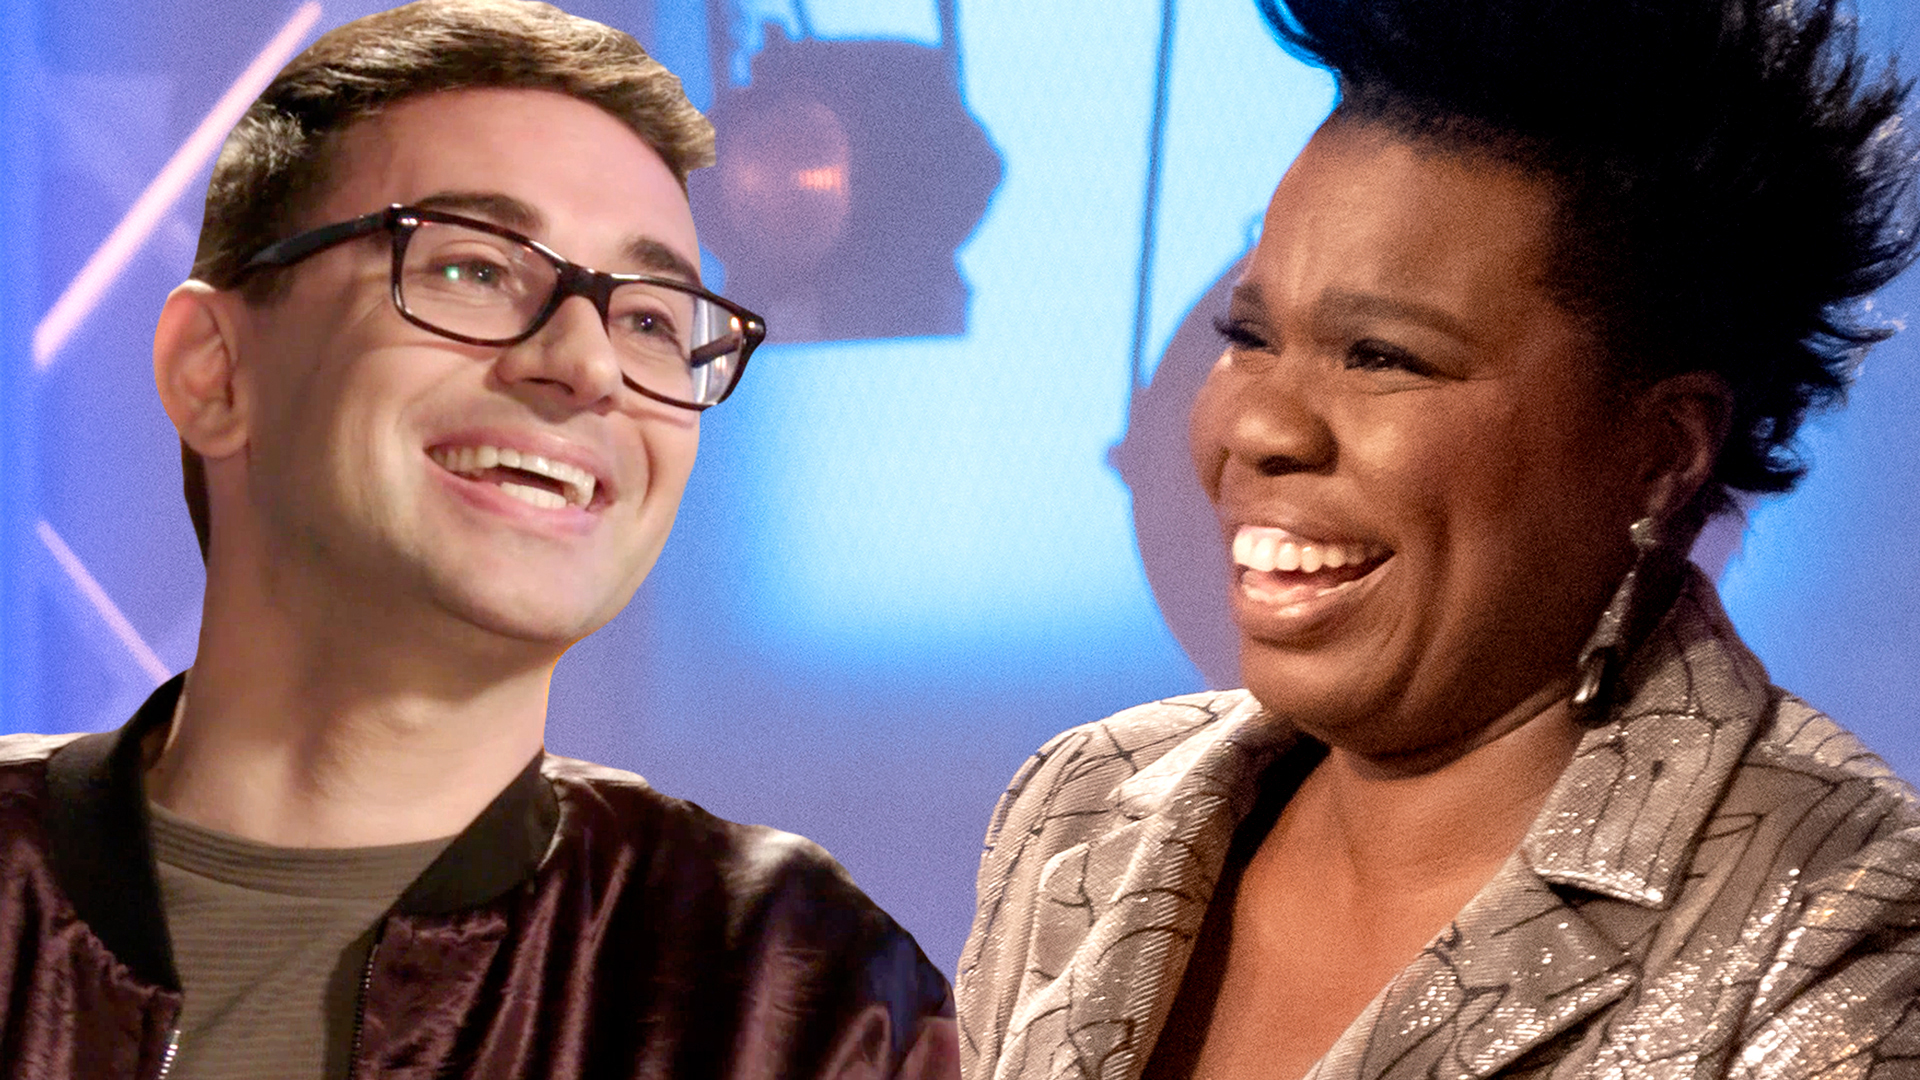 Christian Siriano Can't Stop Laughing at Leslie Jones' Comments